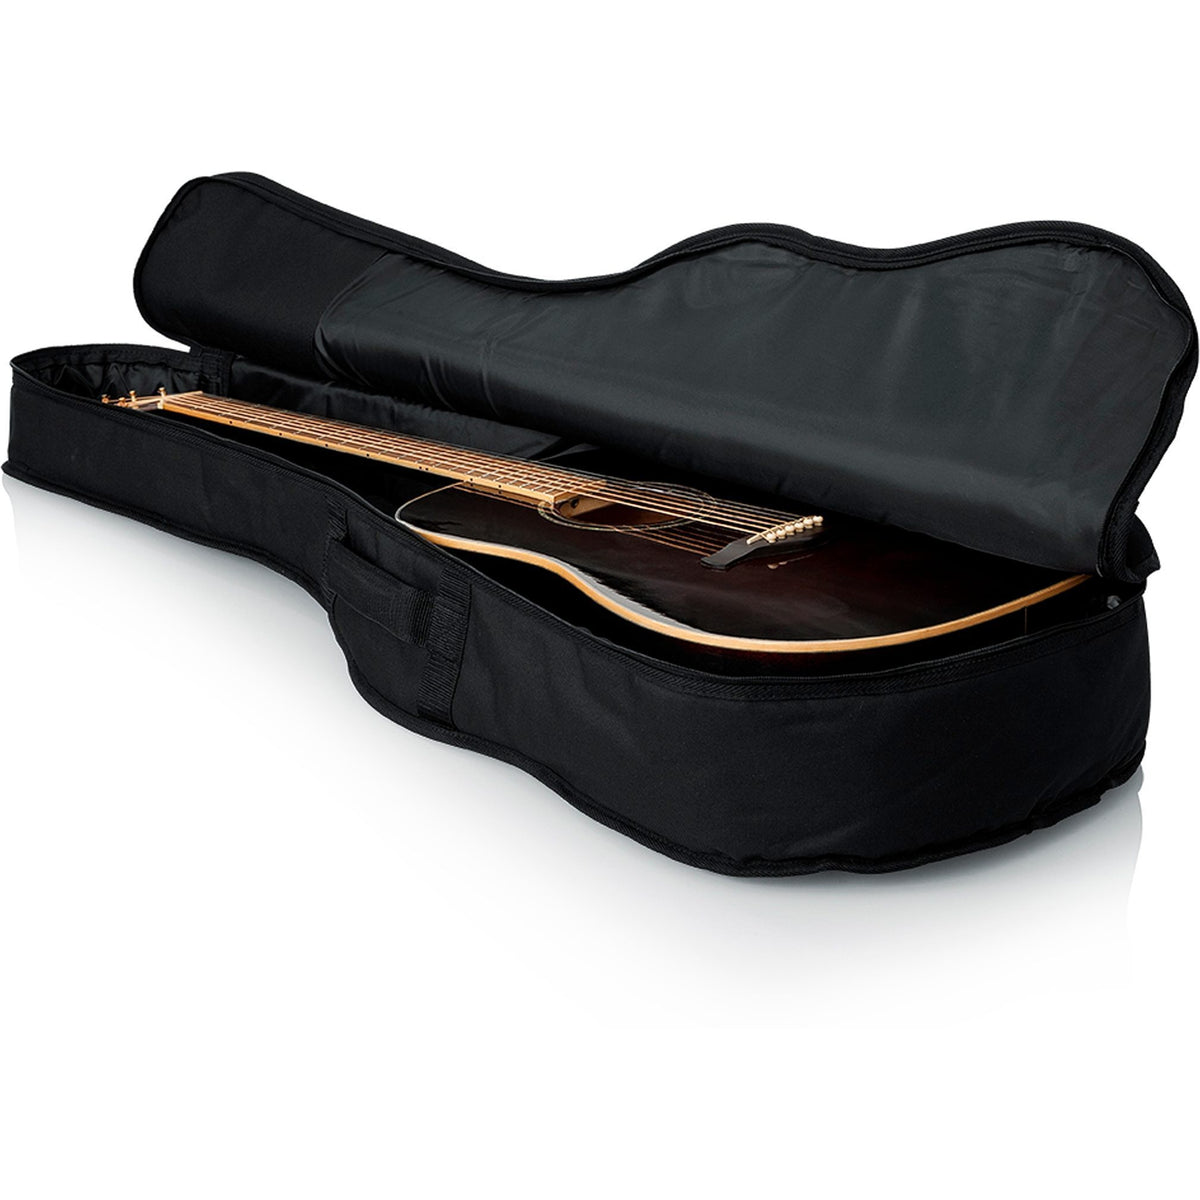 Gator GBE-DREAD Dreadnought Acoustic Guitar Gig Bag